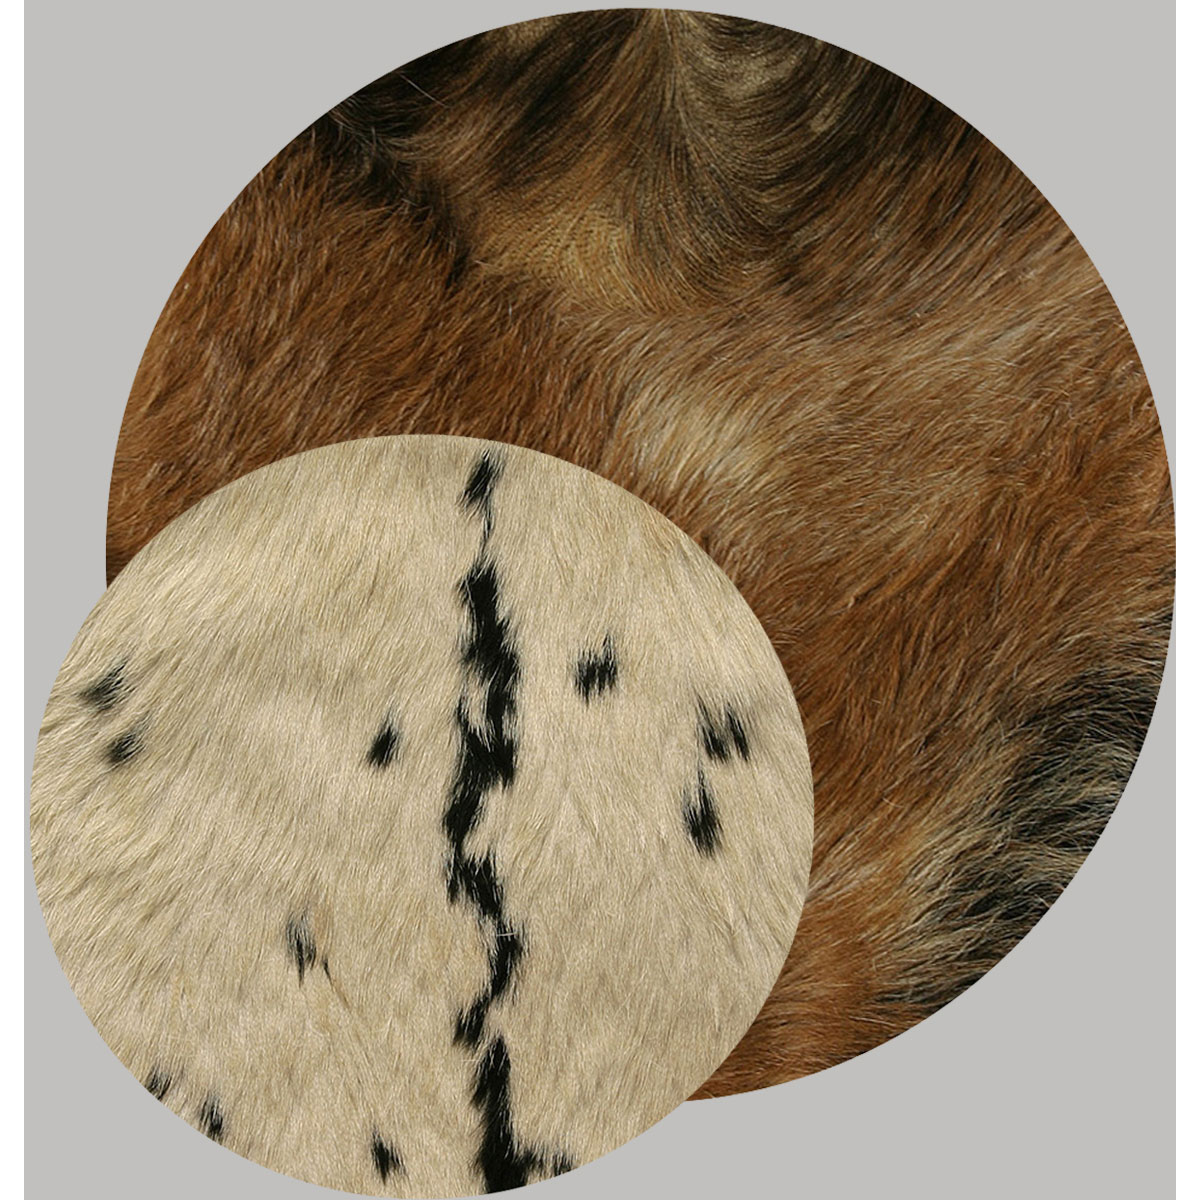 Goat Skin Drum Heads with Hair